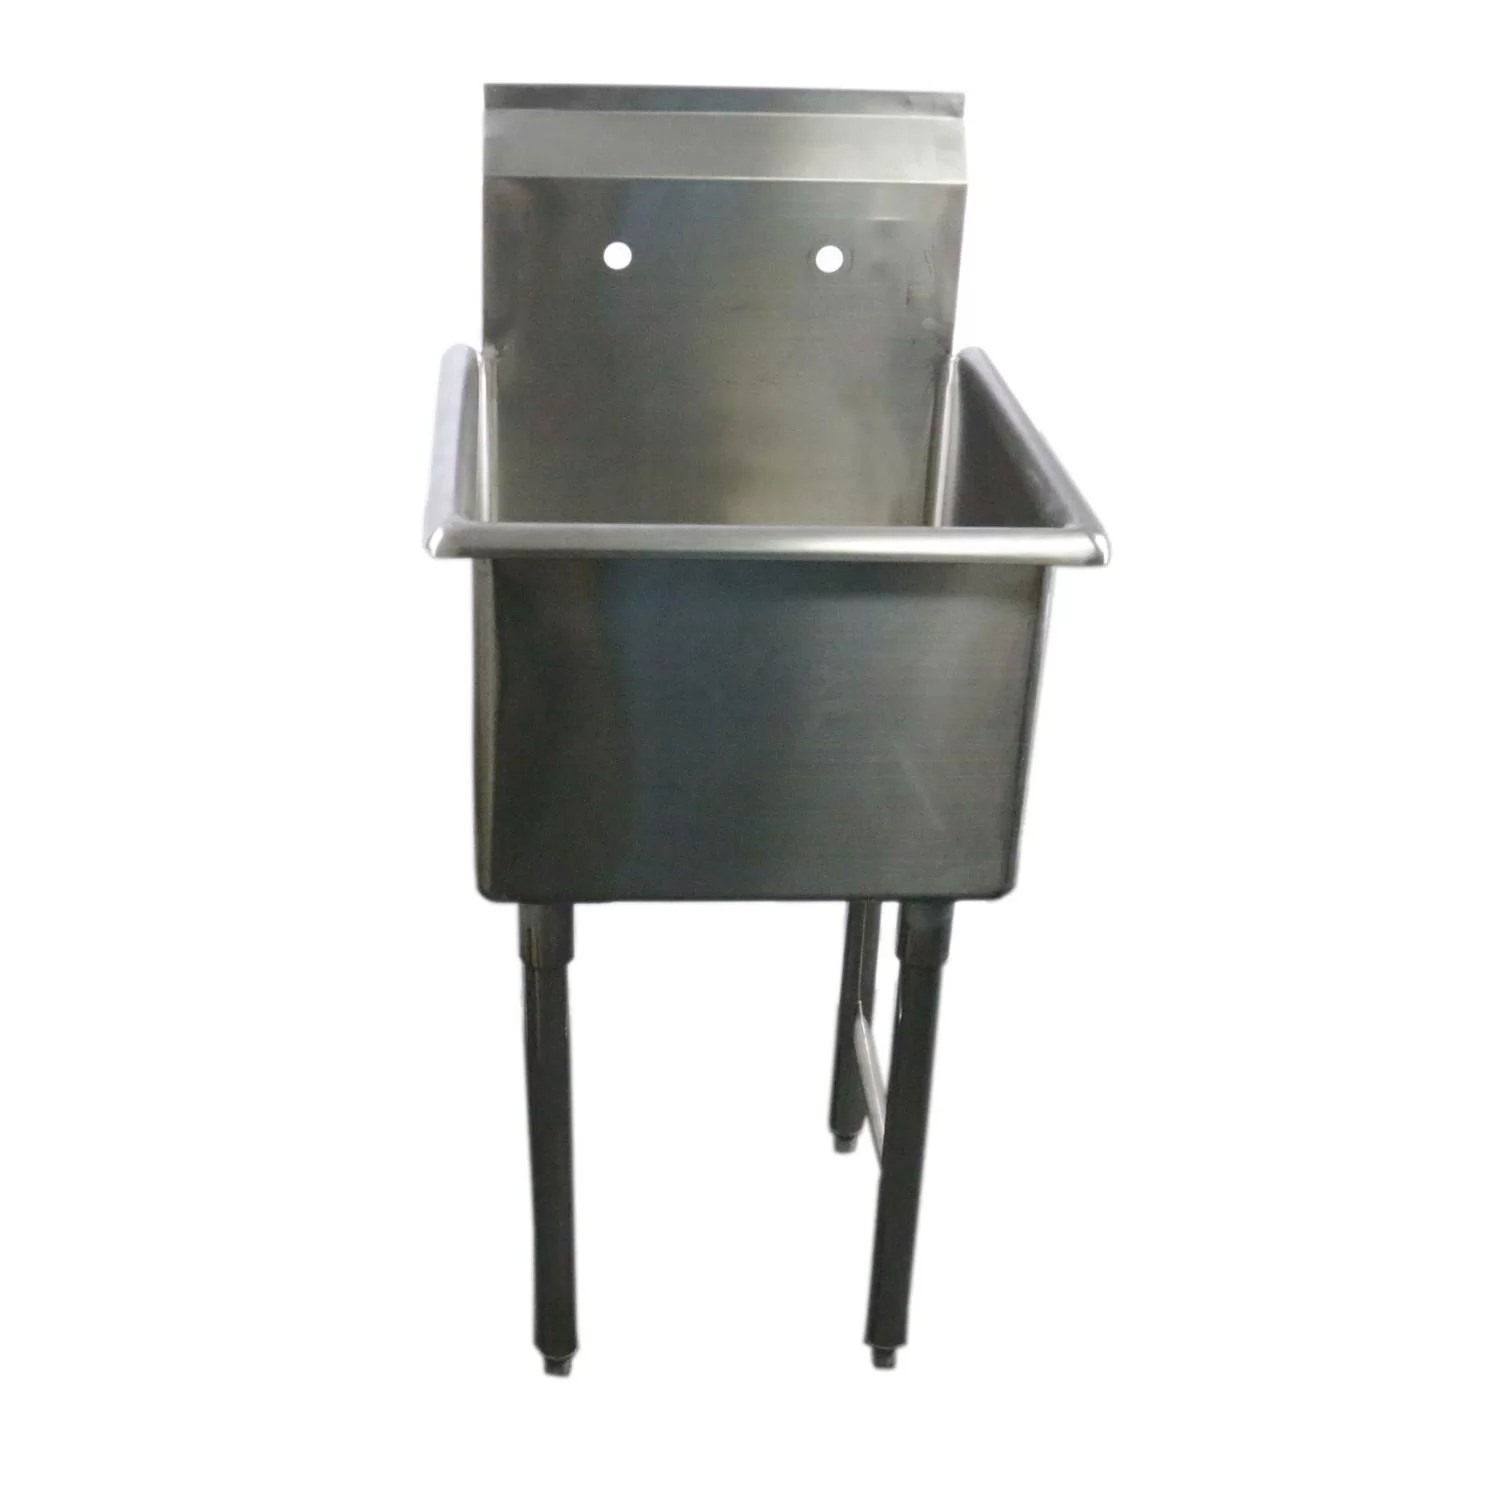 18 25 x 18 75 free standing laundry sink